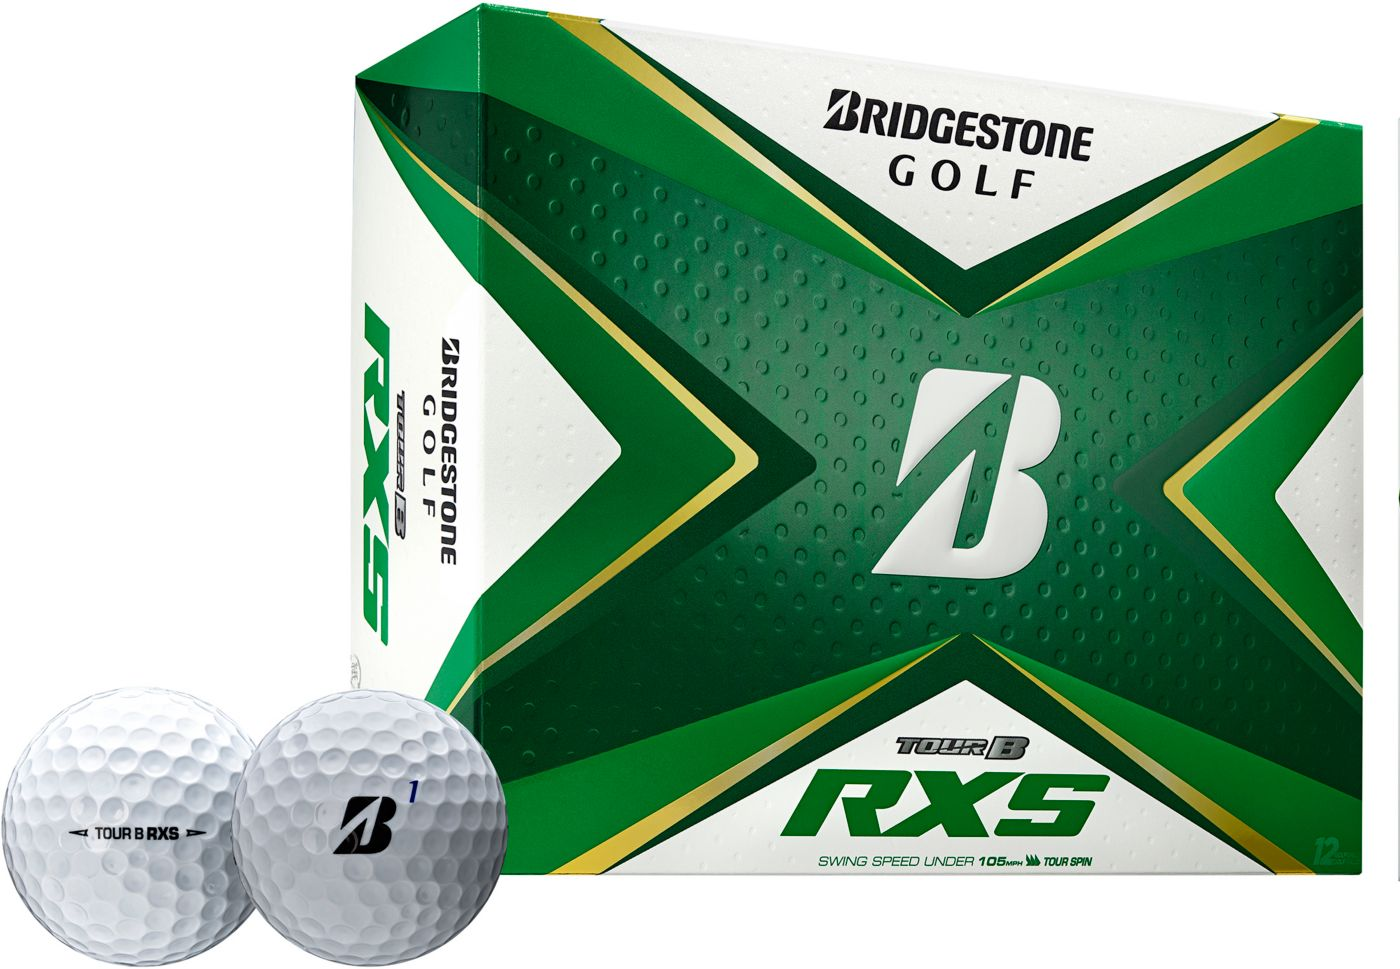 Bridgestone 2020 TOUR B RXS Golf Balls